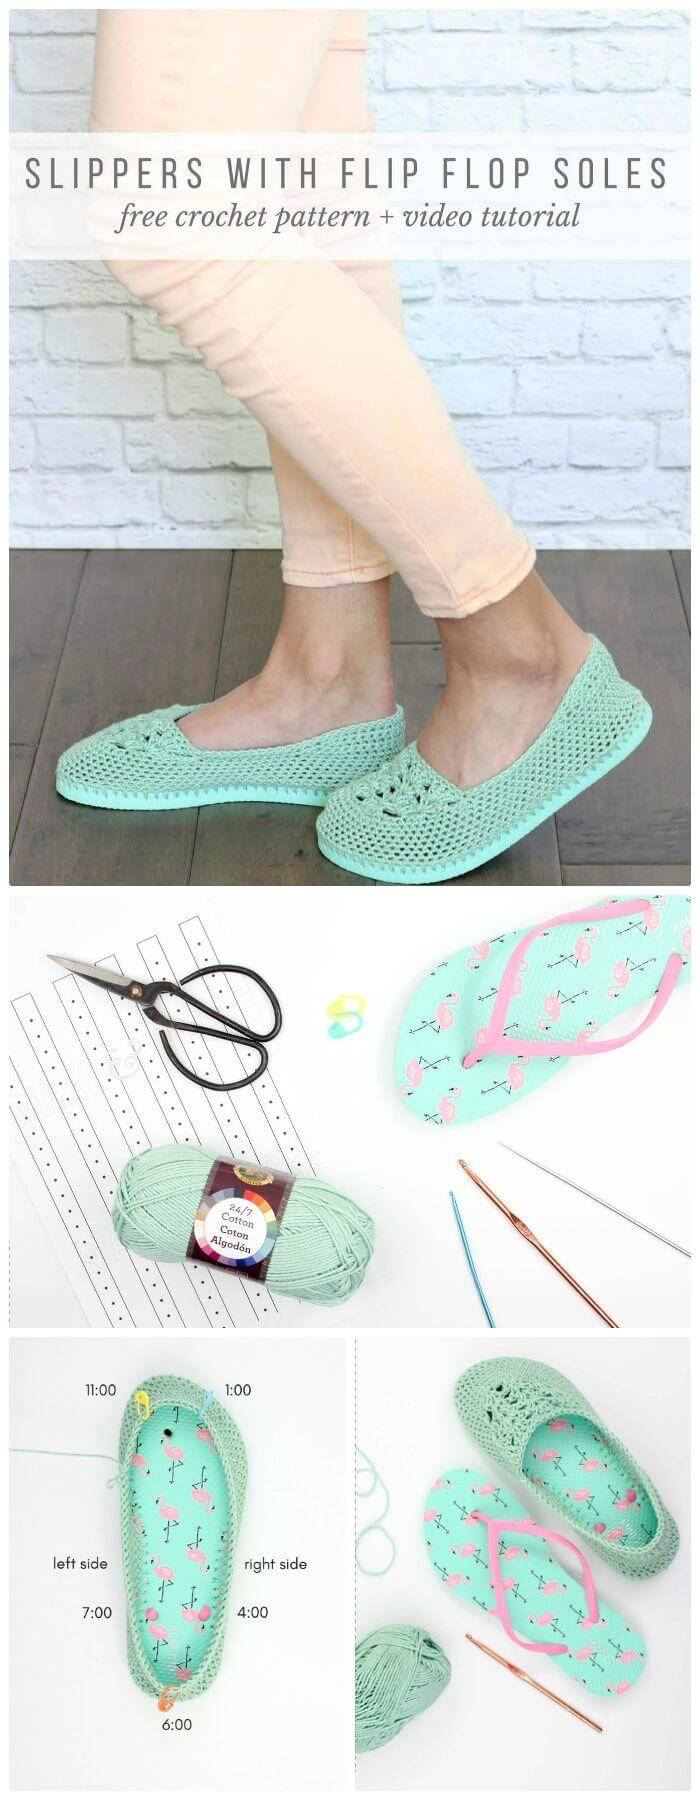 DIY Crochet Slippers with Flip Flop Soles -- Free Pattern, crochet slipper using flip flop sole pattern